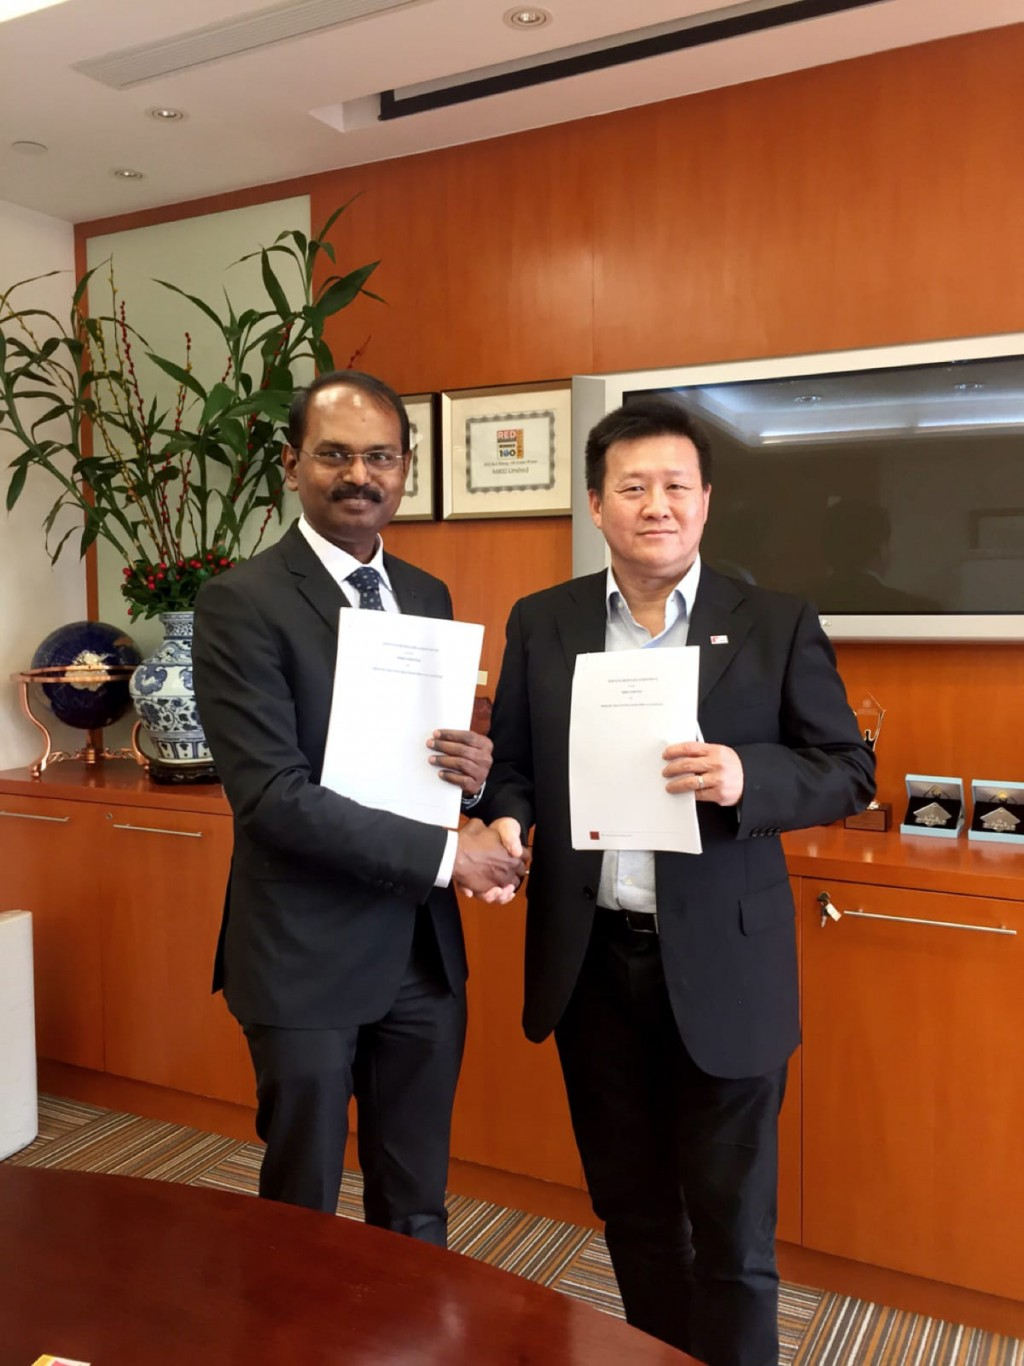 Rajalingam R  CEO Aberame and Steven Yap  CEO M800 signing a strategic reseller partnership